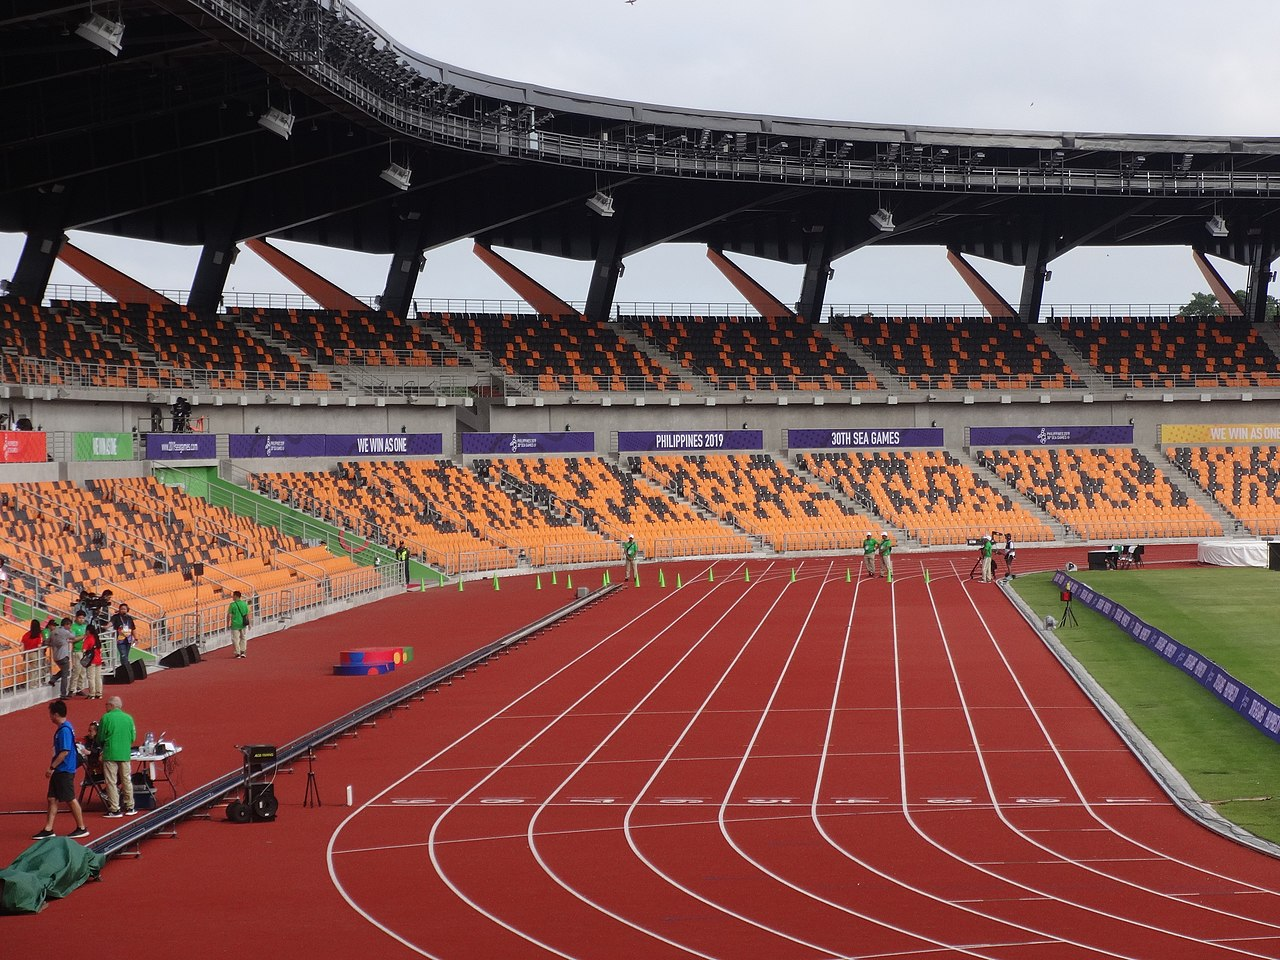 Olympic running track